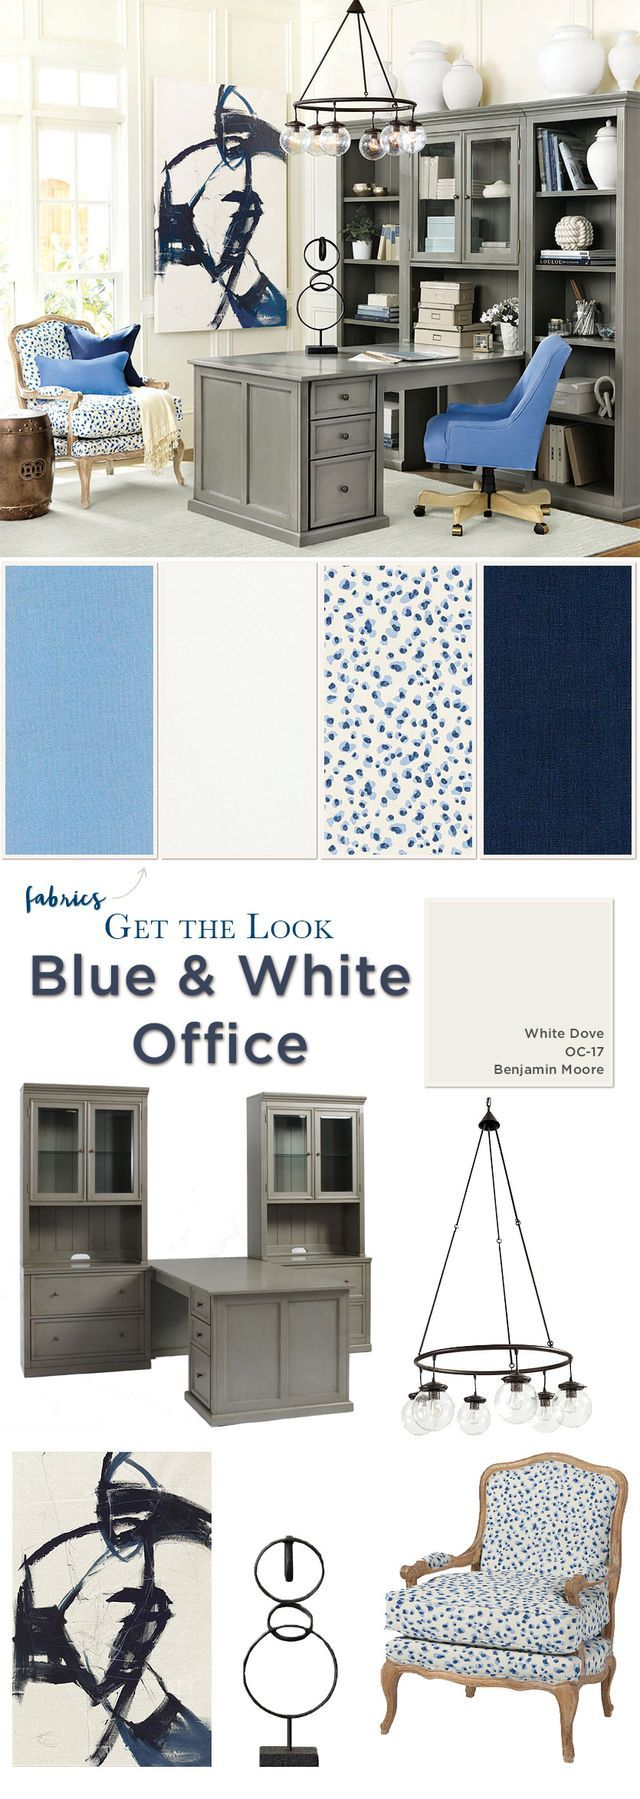 Get the Look: Blue & White Home Office | How To Decorate | Bloglovin'